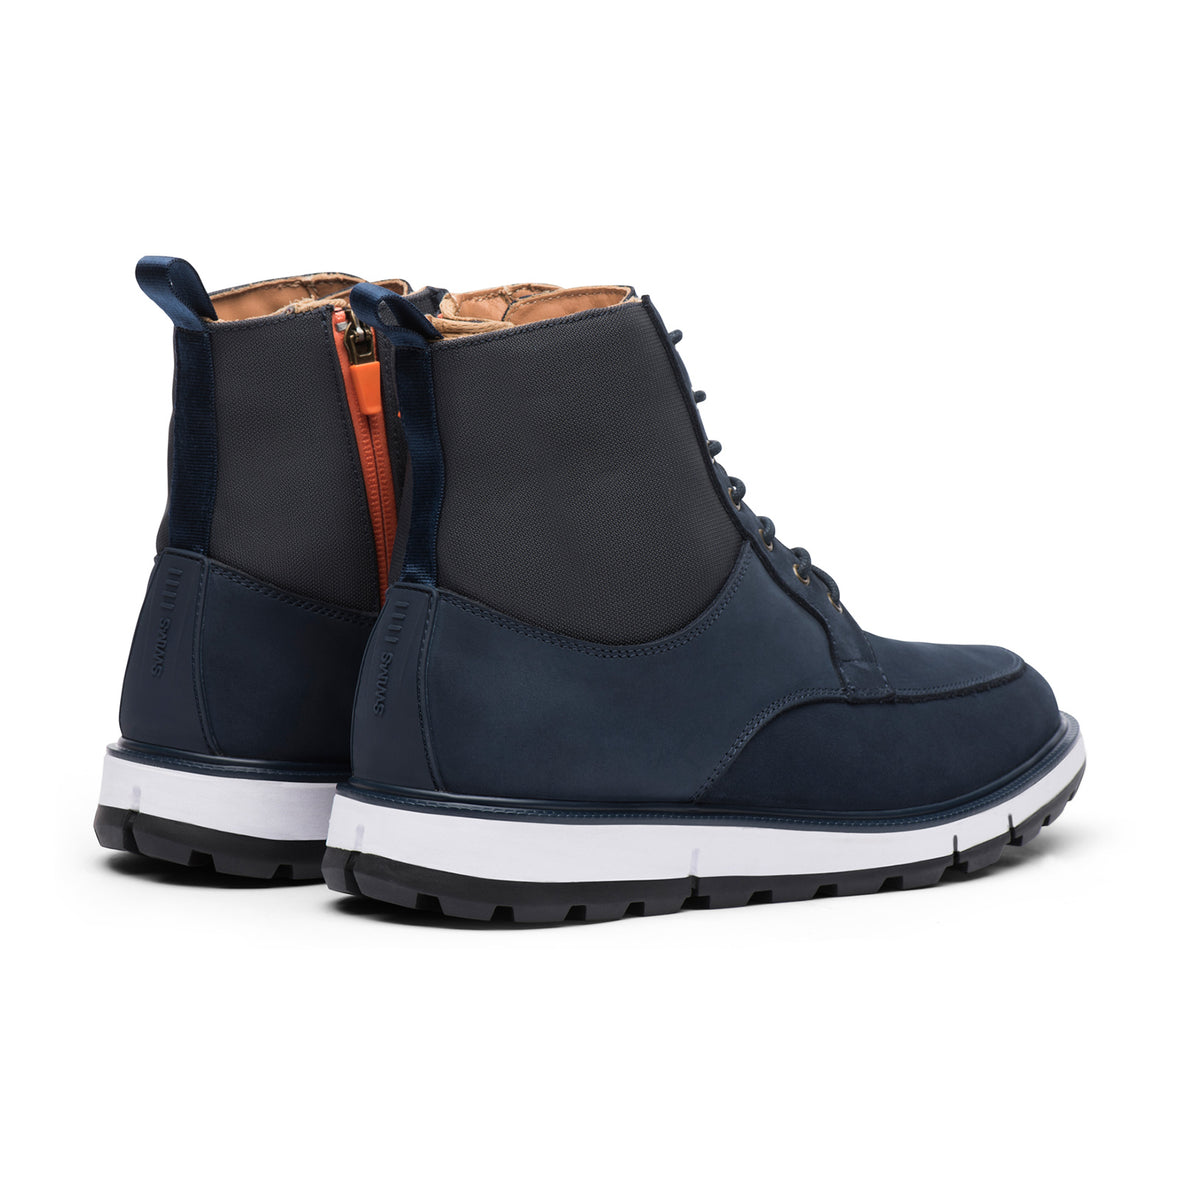 Motion Country Boot - background::white,variant::Navy/Orange